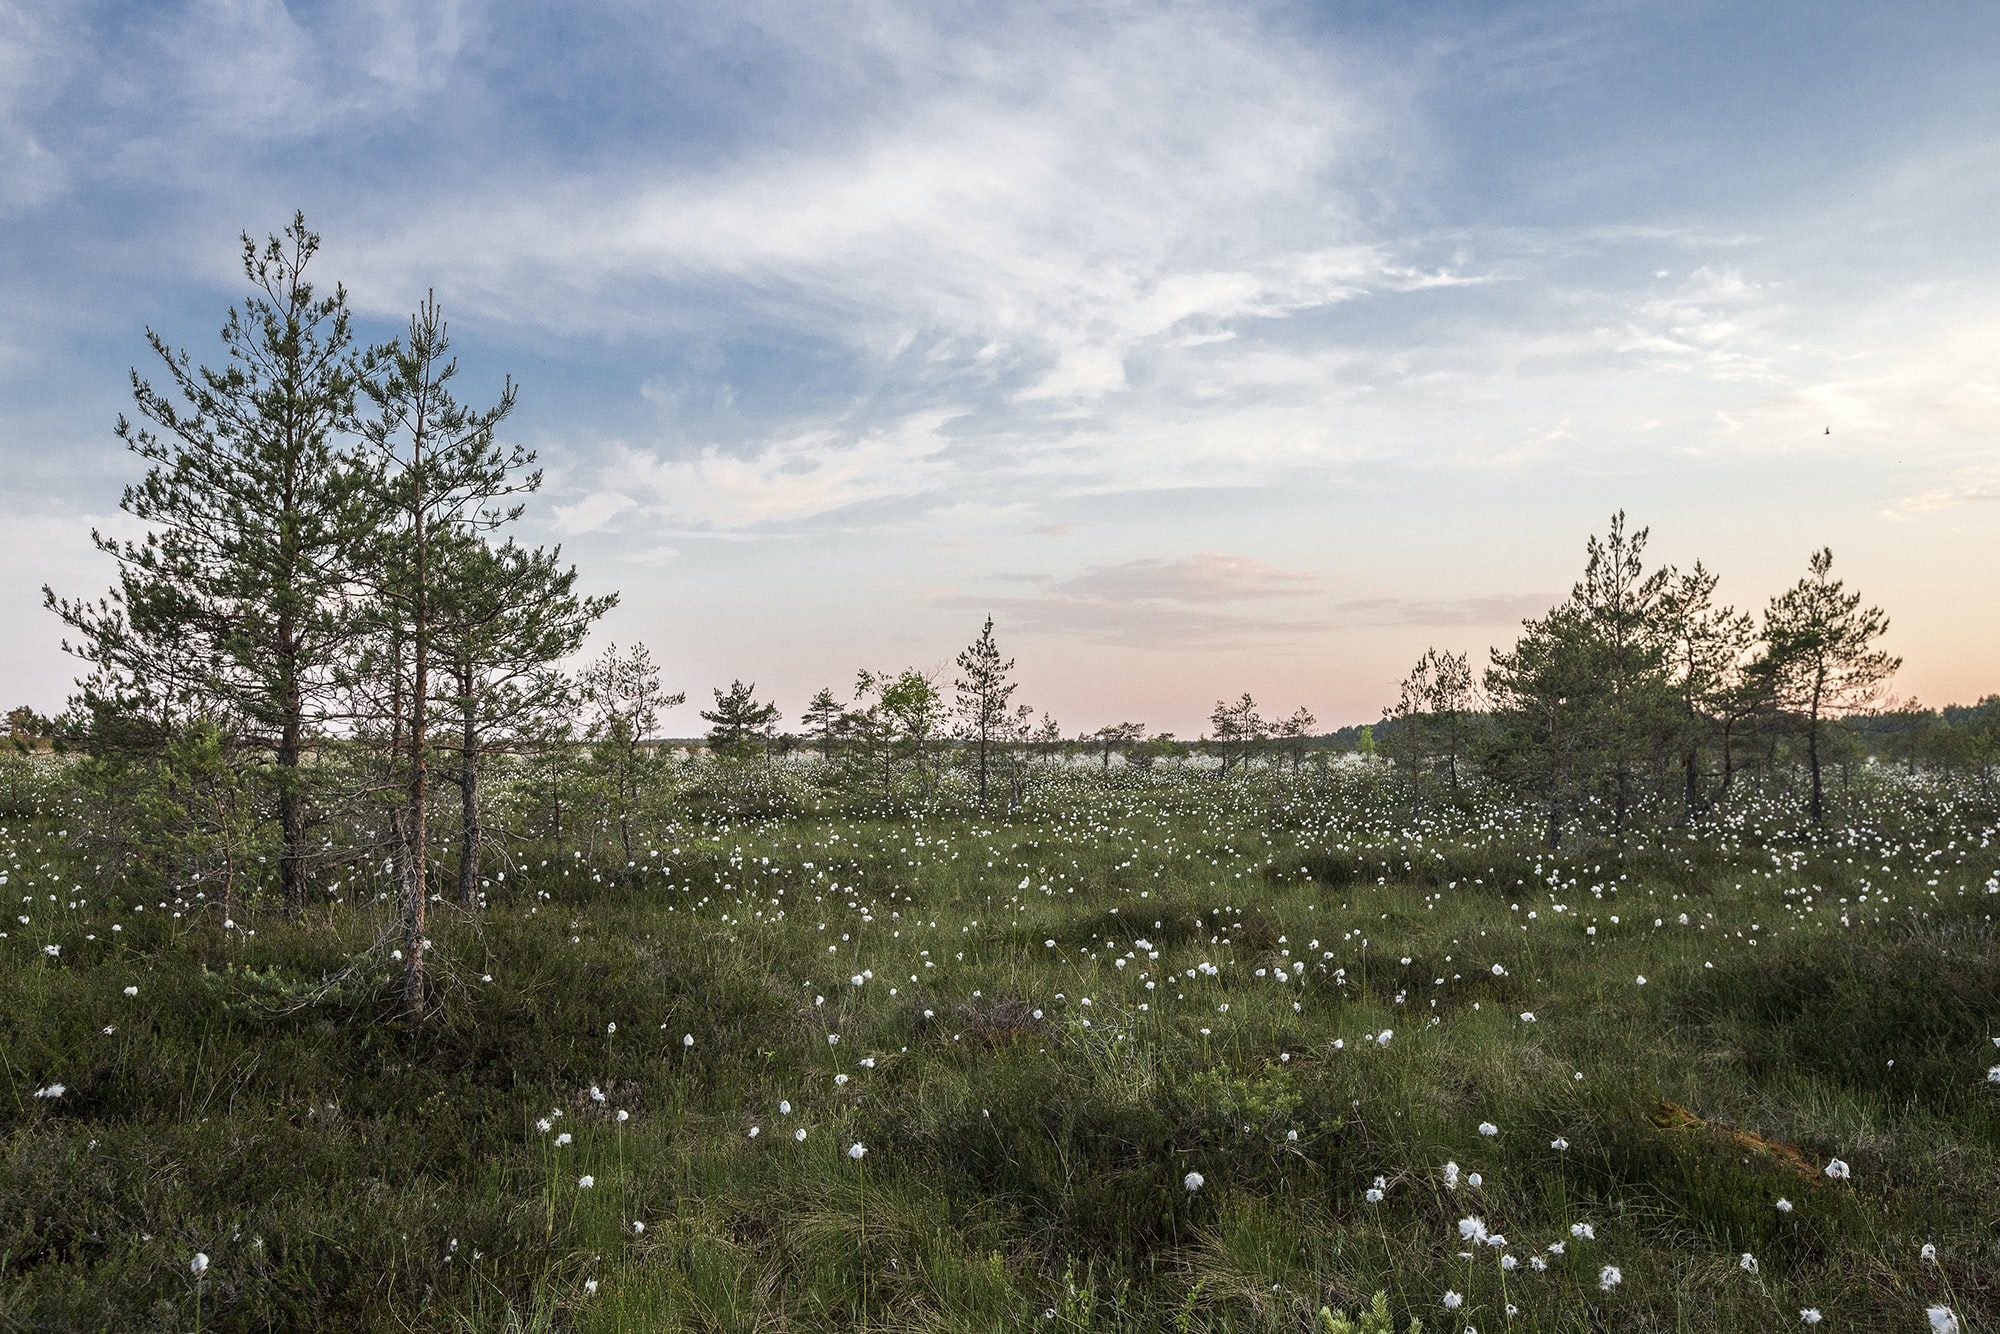 A peaceful green meadow covered with white flowers and sparse trees under wispy clouds